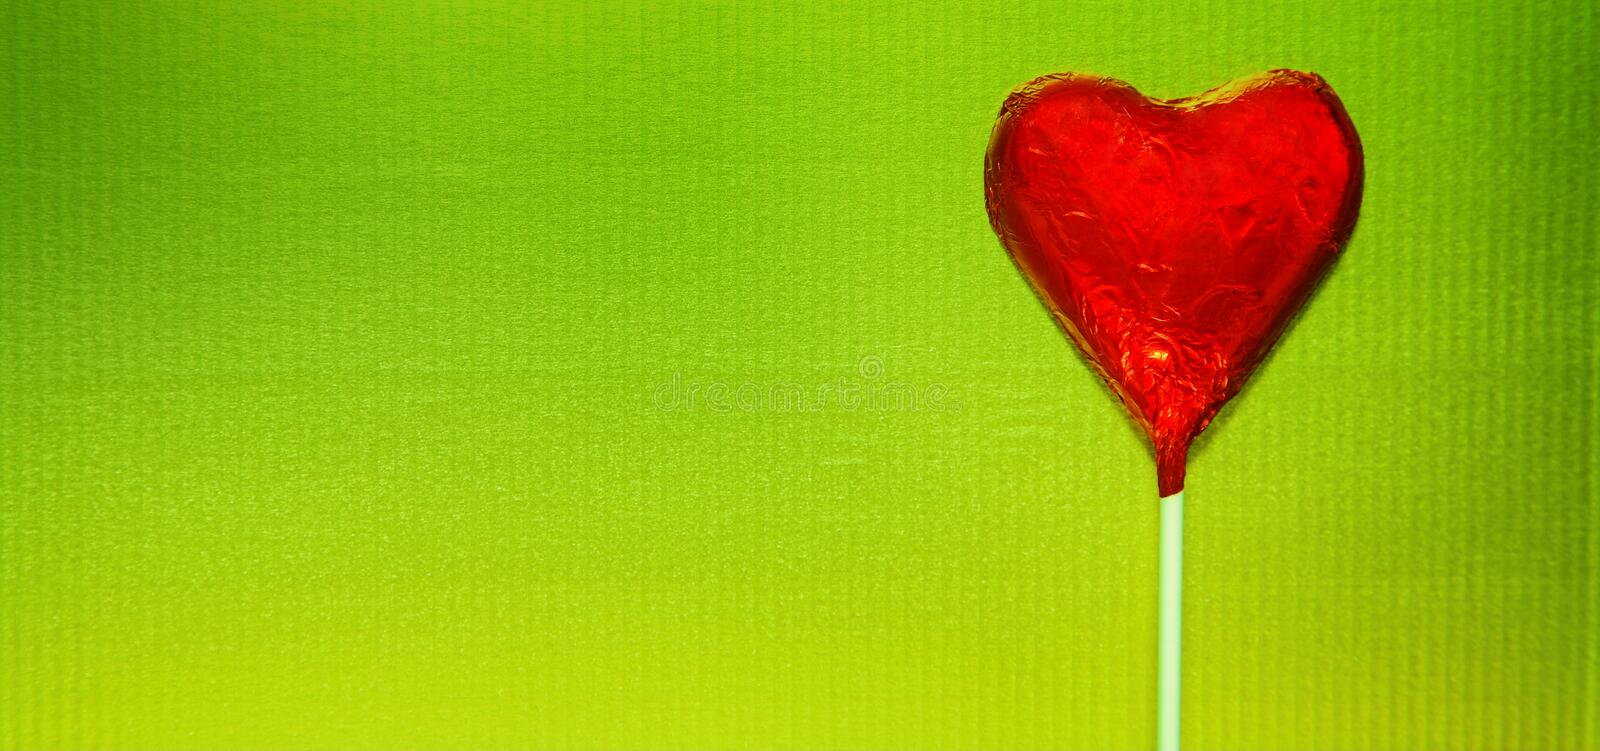 Red heart on green. Red candy heart on bright golden green background stock photography